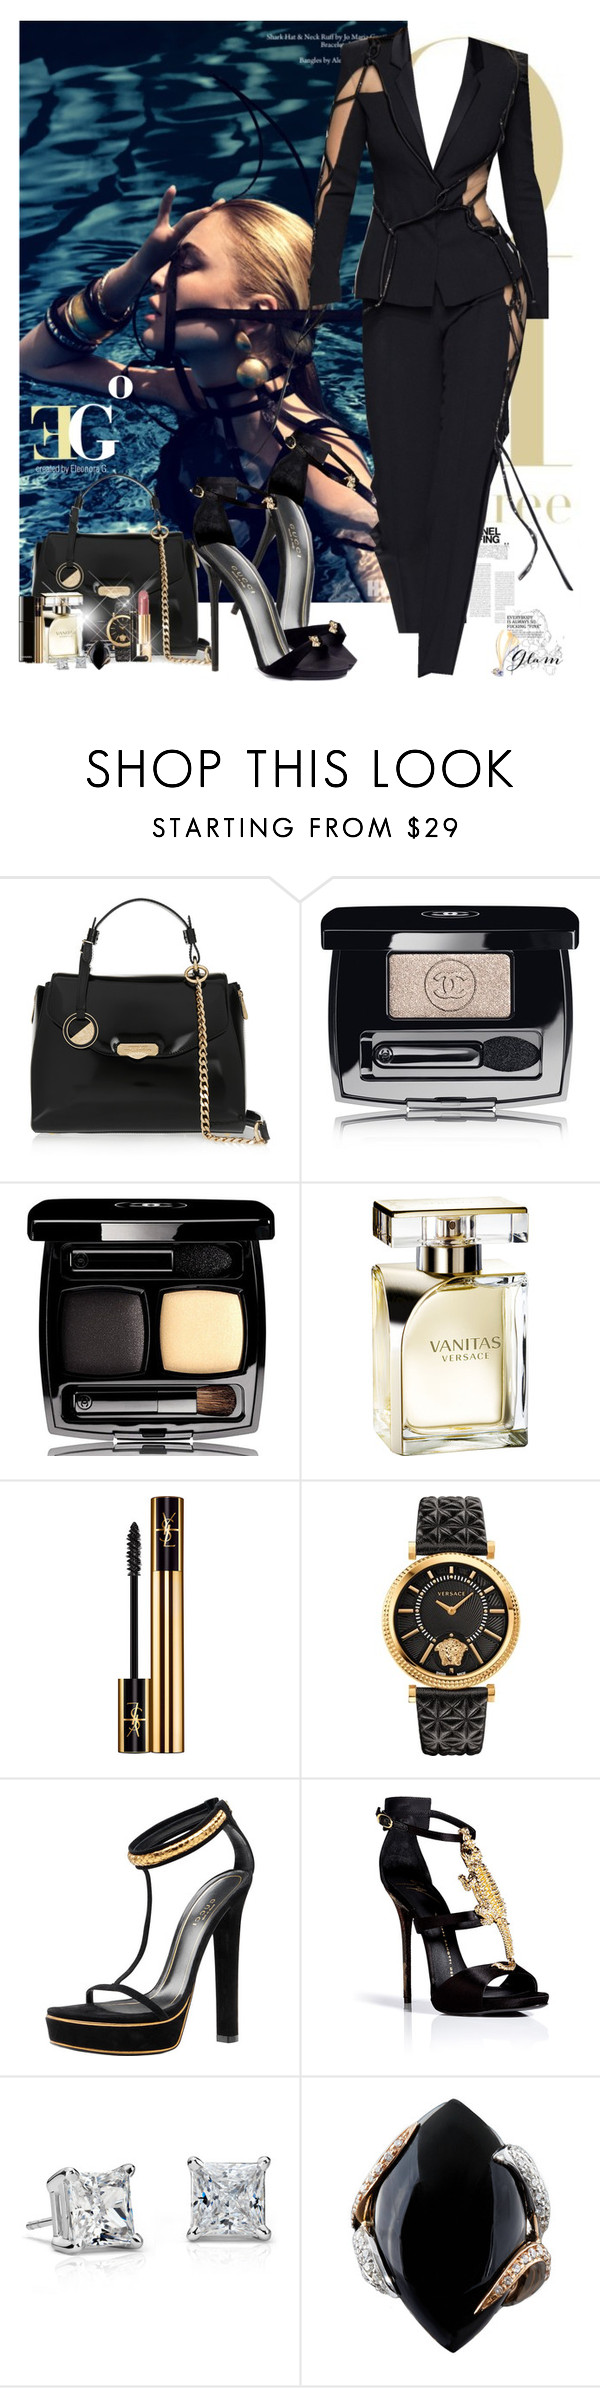 """""""Monday in my world"""" by eleonoragocevska ❤ liked on Polyvore featuring Versace, Chanel, Yves Saint Laurent, Giuseppe Zanotti, Gucci, Sergio Rossi, Blue Nile and Luca Carati"""